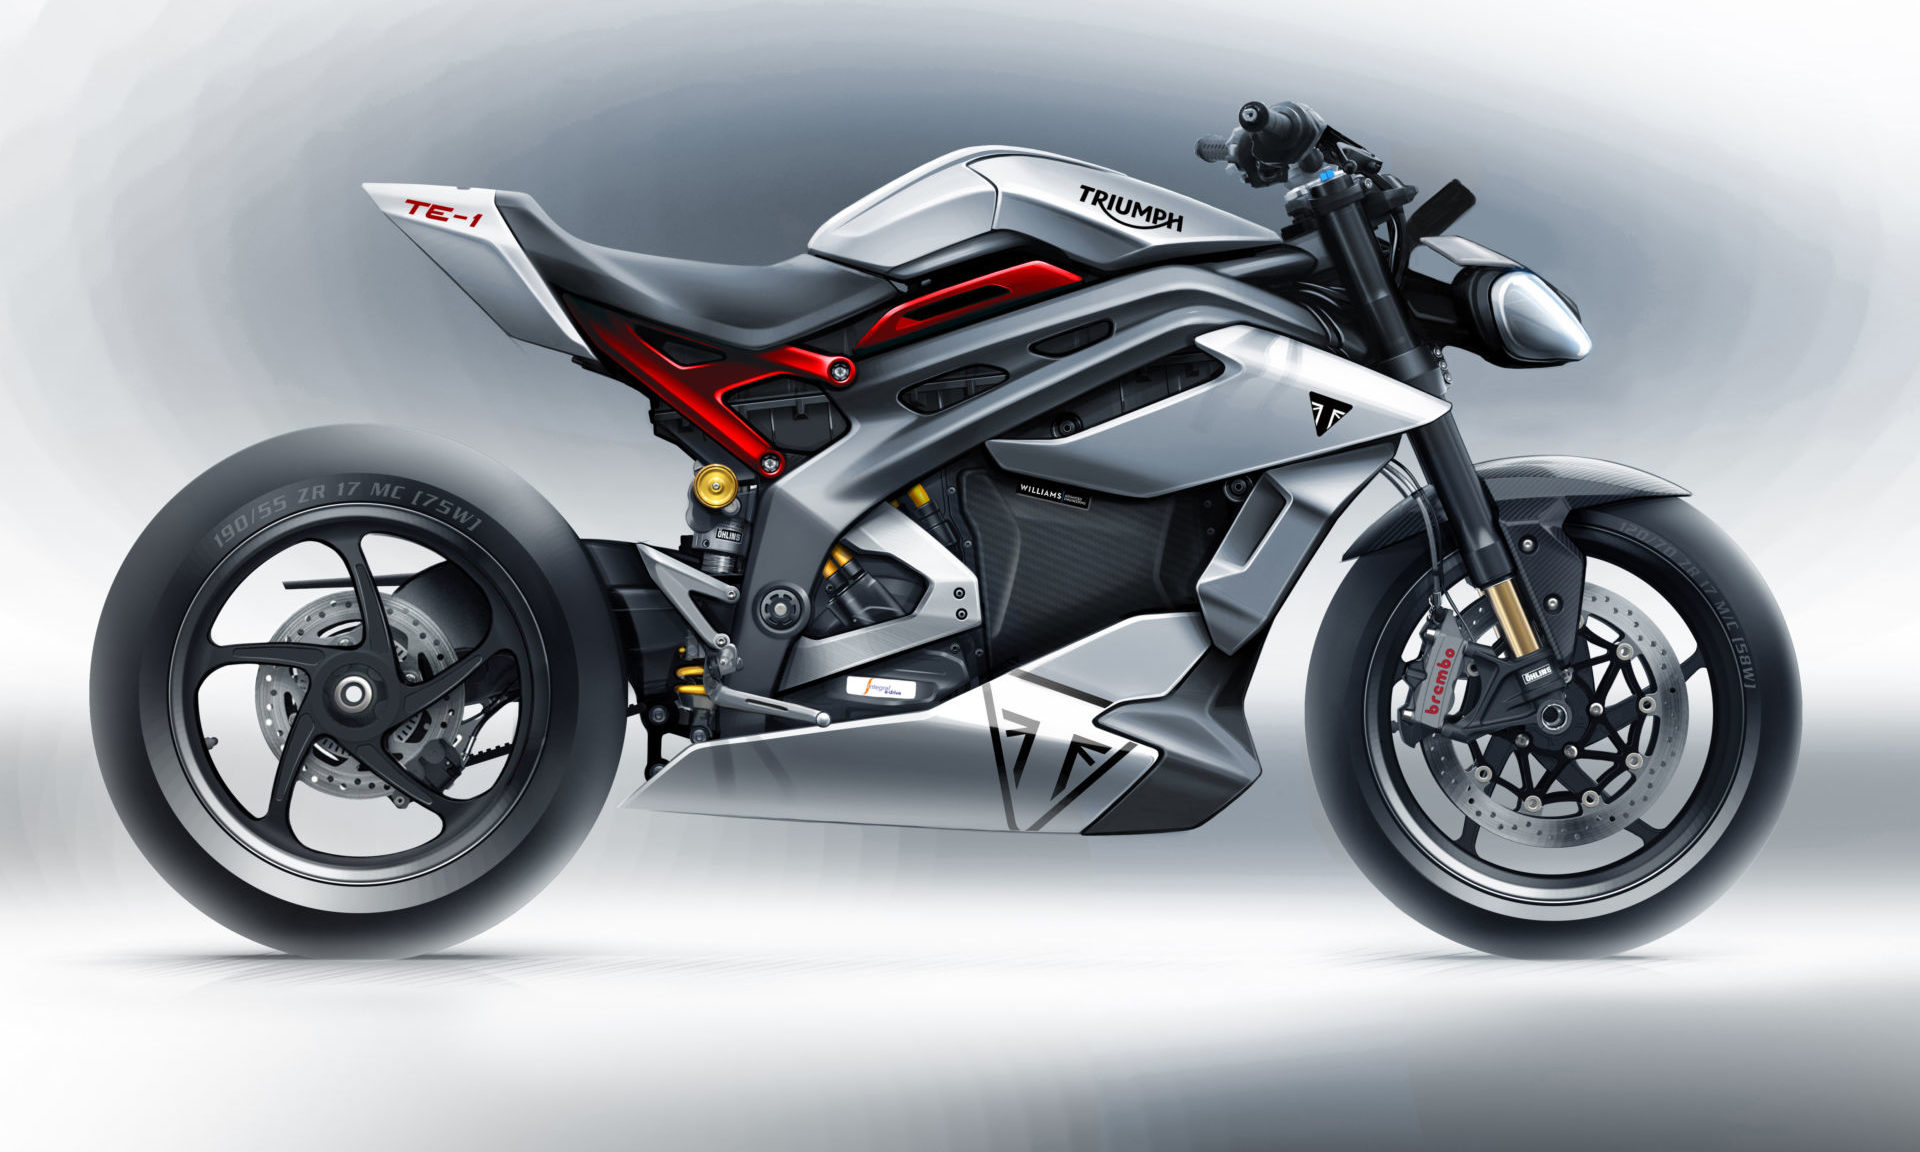 The styling sketch of the new Triumph Project TE-1 electric motorcycle. Image courtesy Triumph.